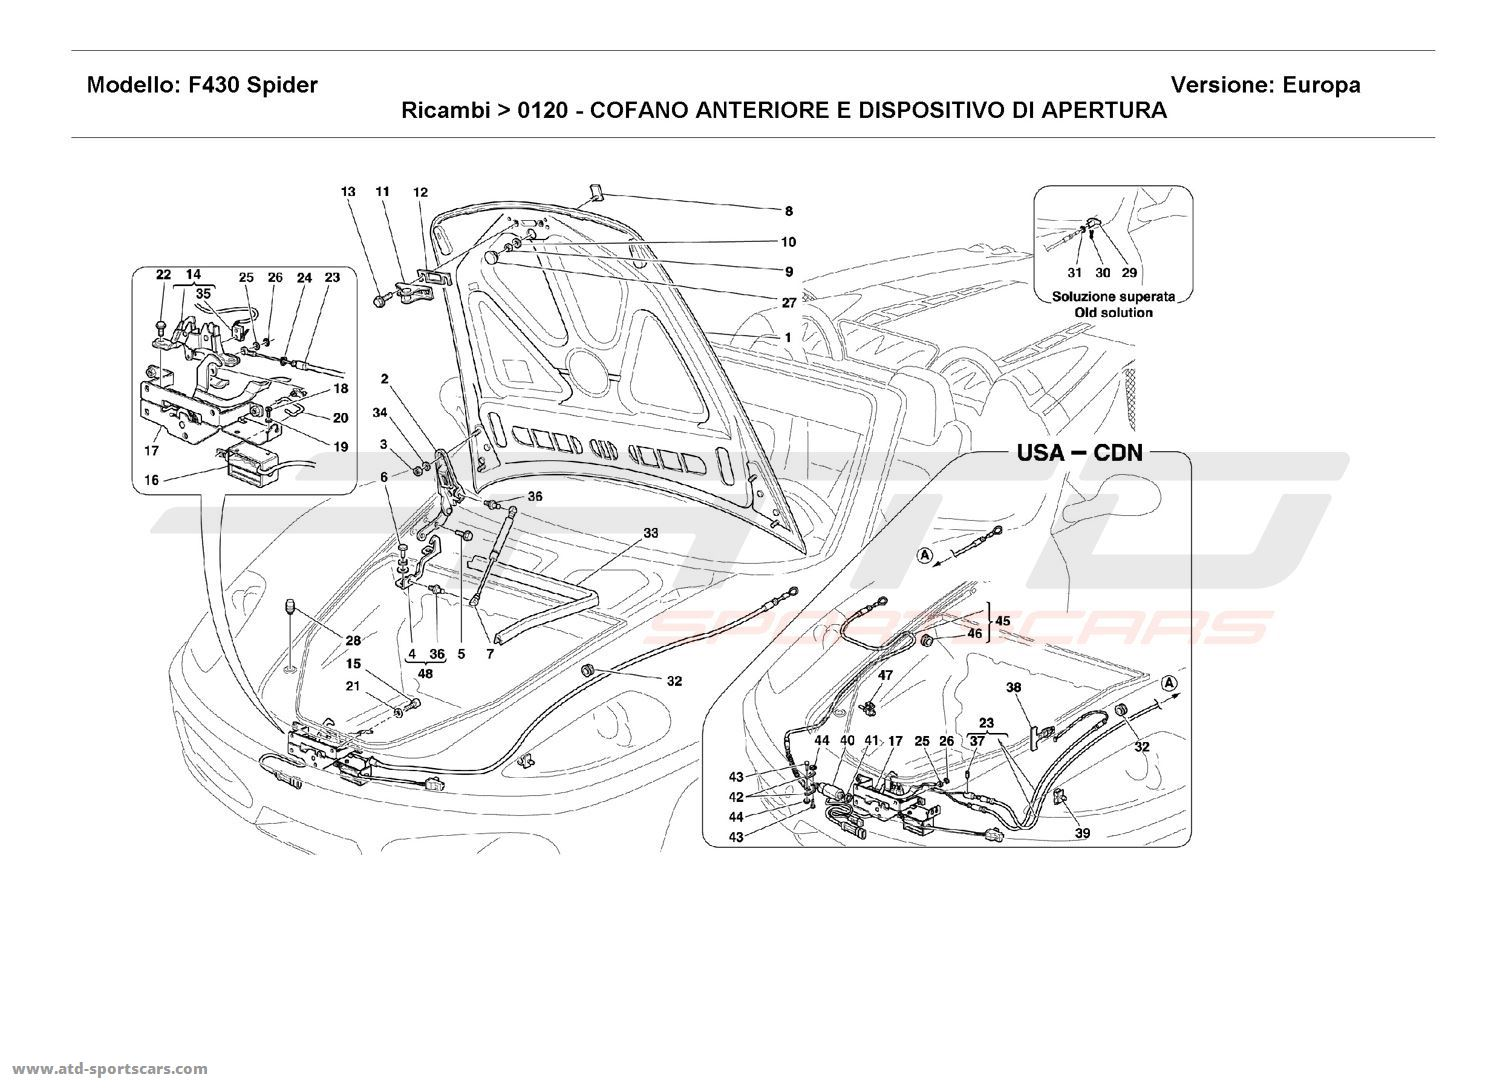 FRONT HOOD AND OPENING DEVICE